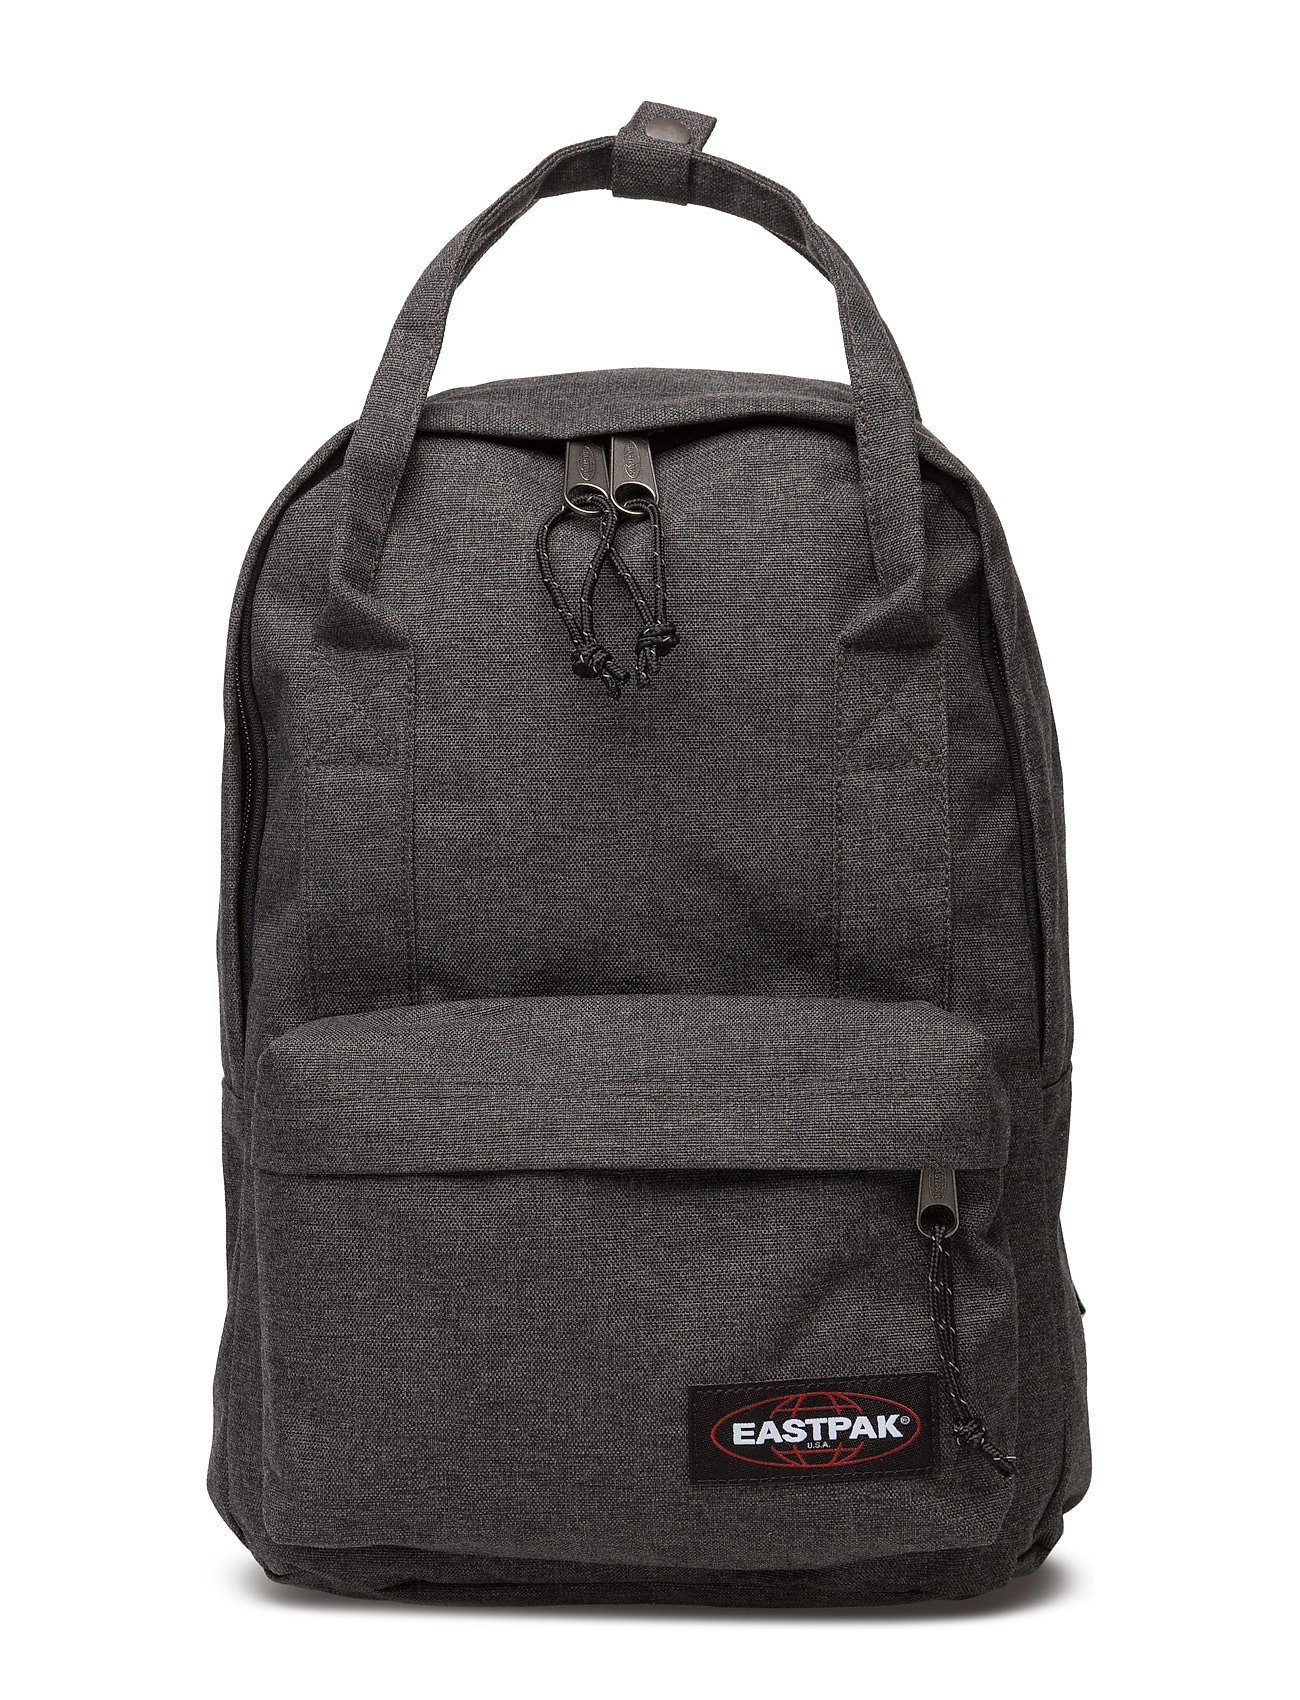 Padded Shop'R Black Eastpak Rygsække til Herrer i Black Denim